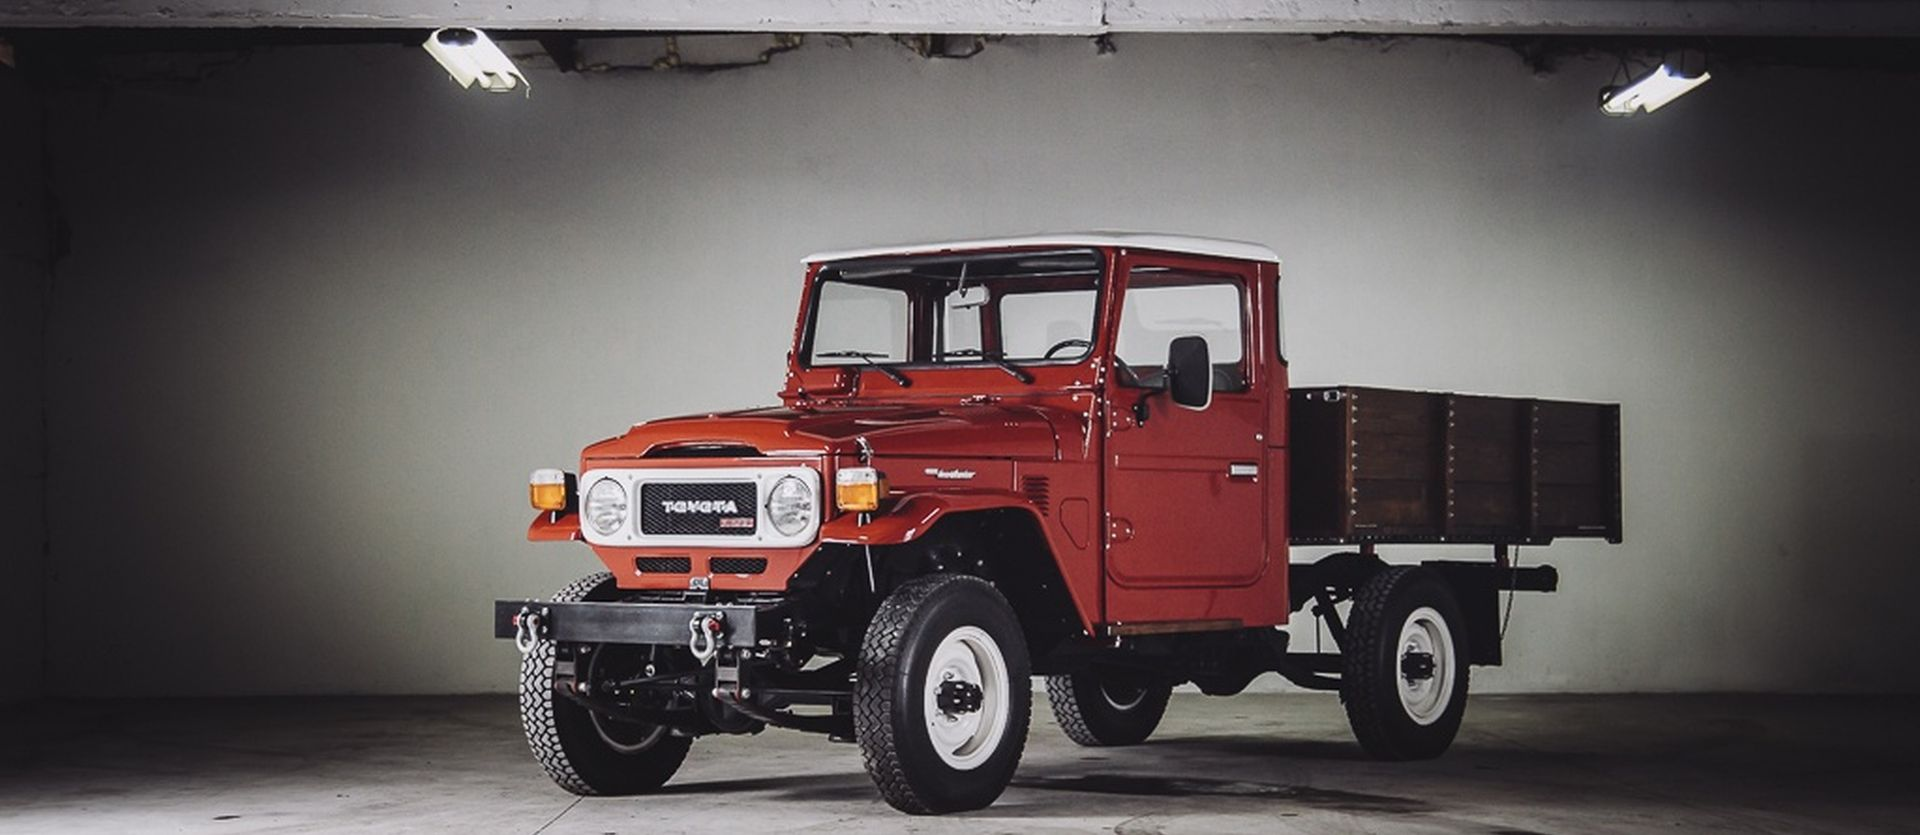 Land Cruiser BJ 45LP - Infinitum Classic Car Club